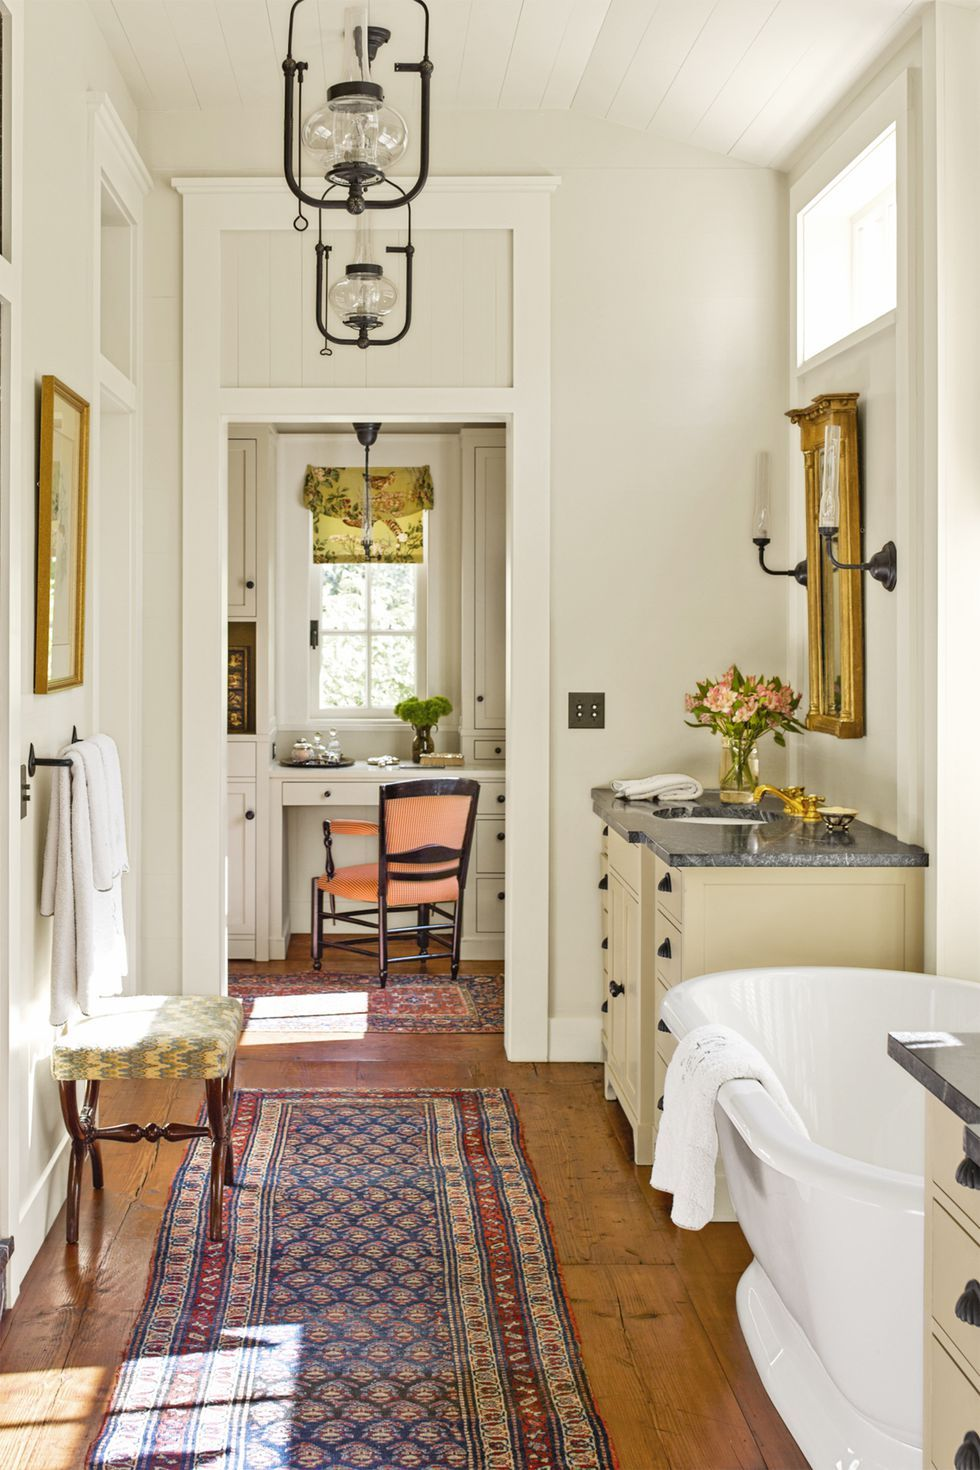 100 Best Bathroom Decorating Ideas Decor Design Inspirations For